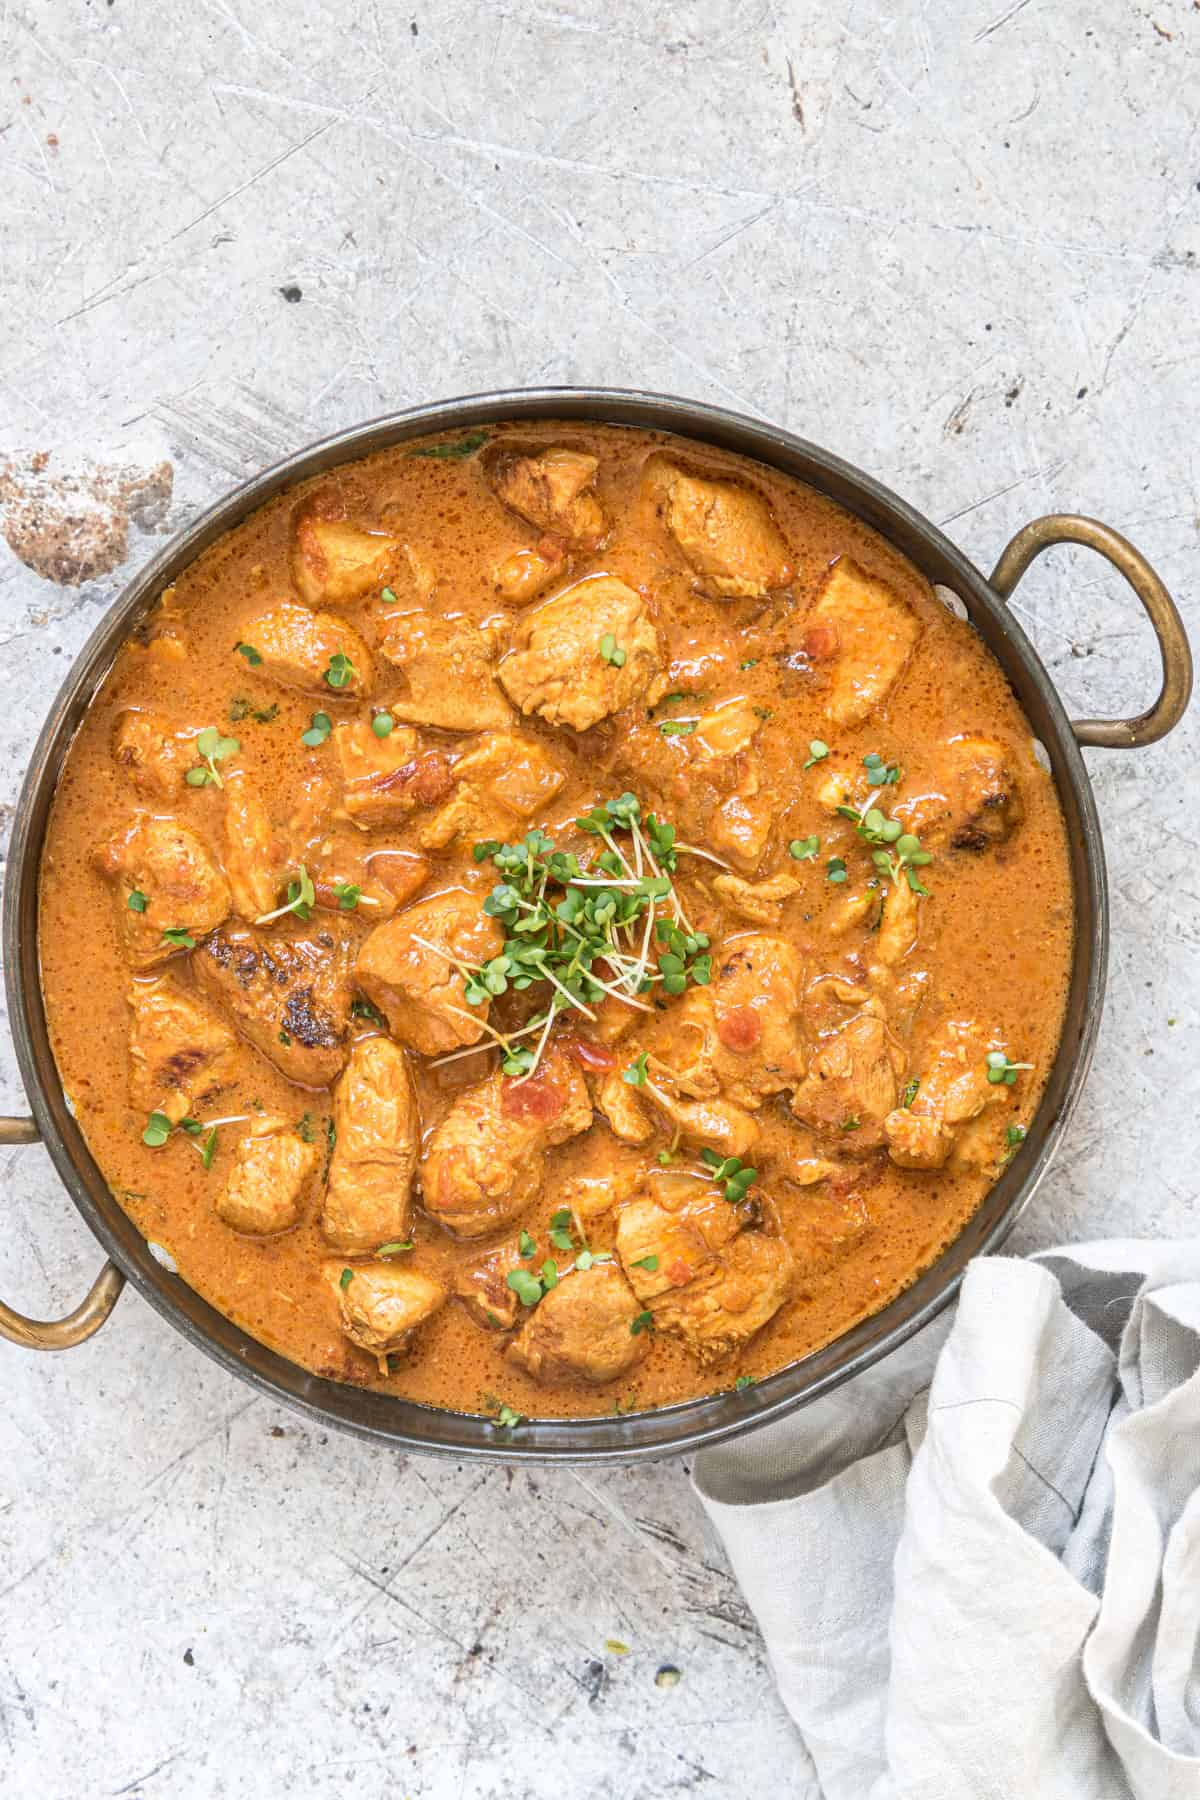 instant pot chicken curry served in a stainless steel dish